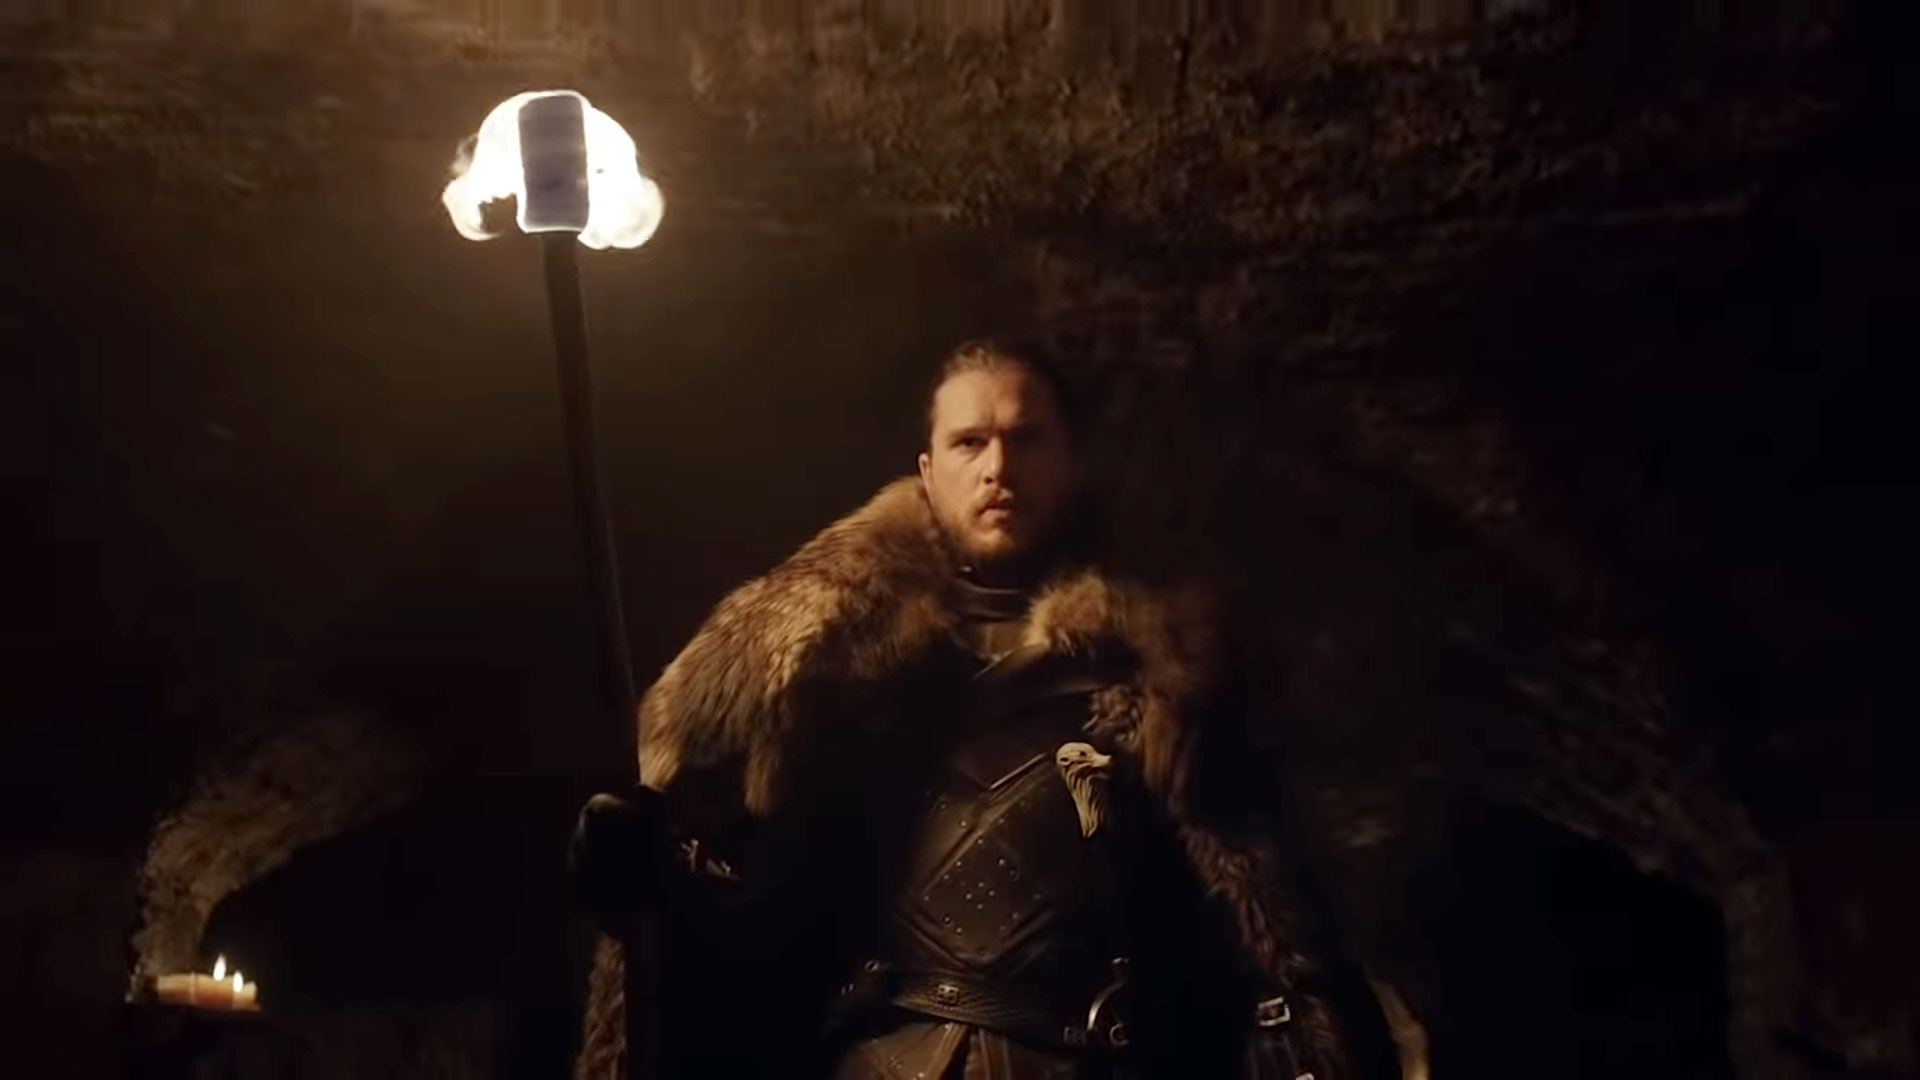 watch game of thrones season 8 - photo #45